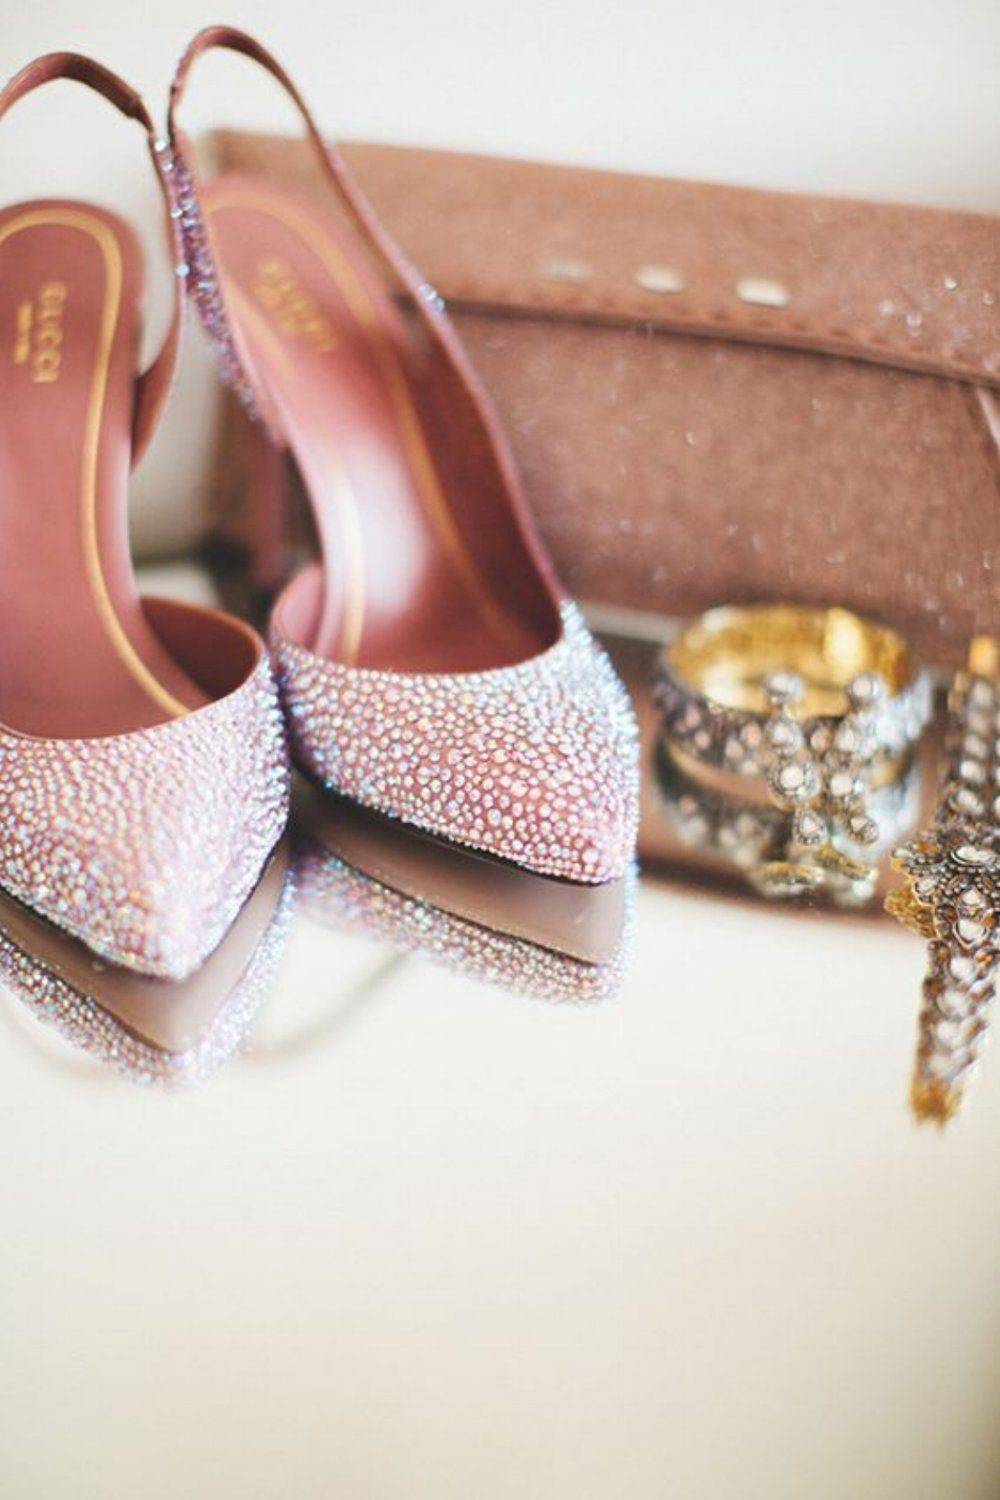 Gucci wedding shoes | Photo by First